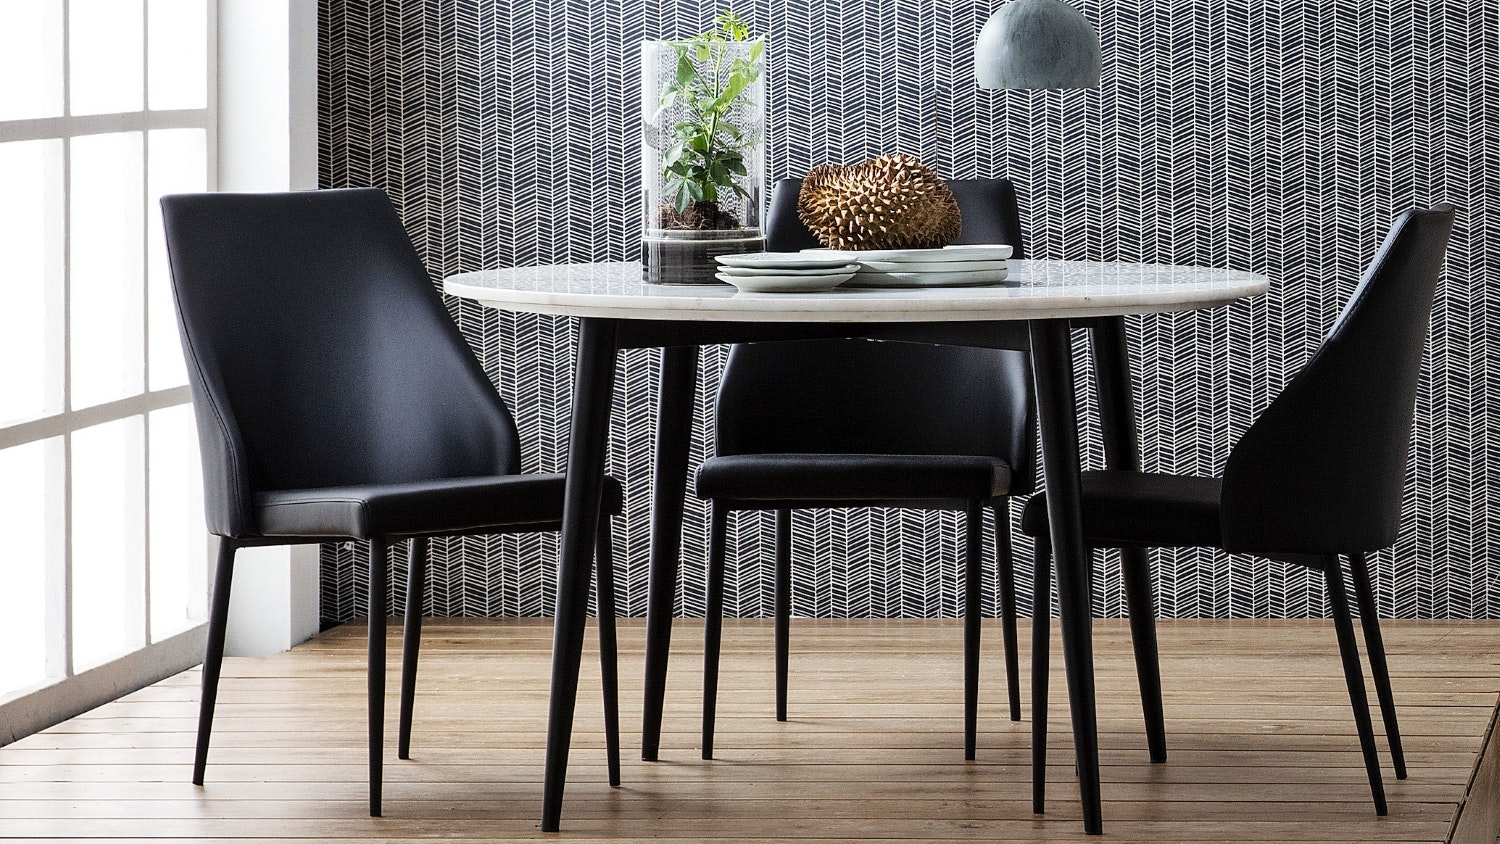 Metz Dining Chair - Black